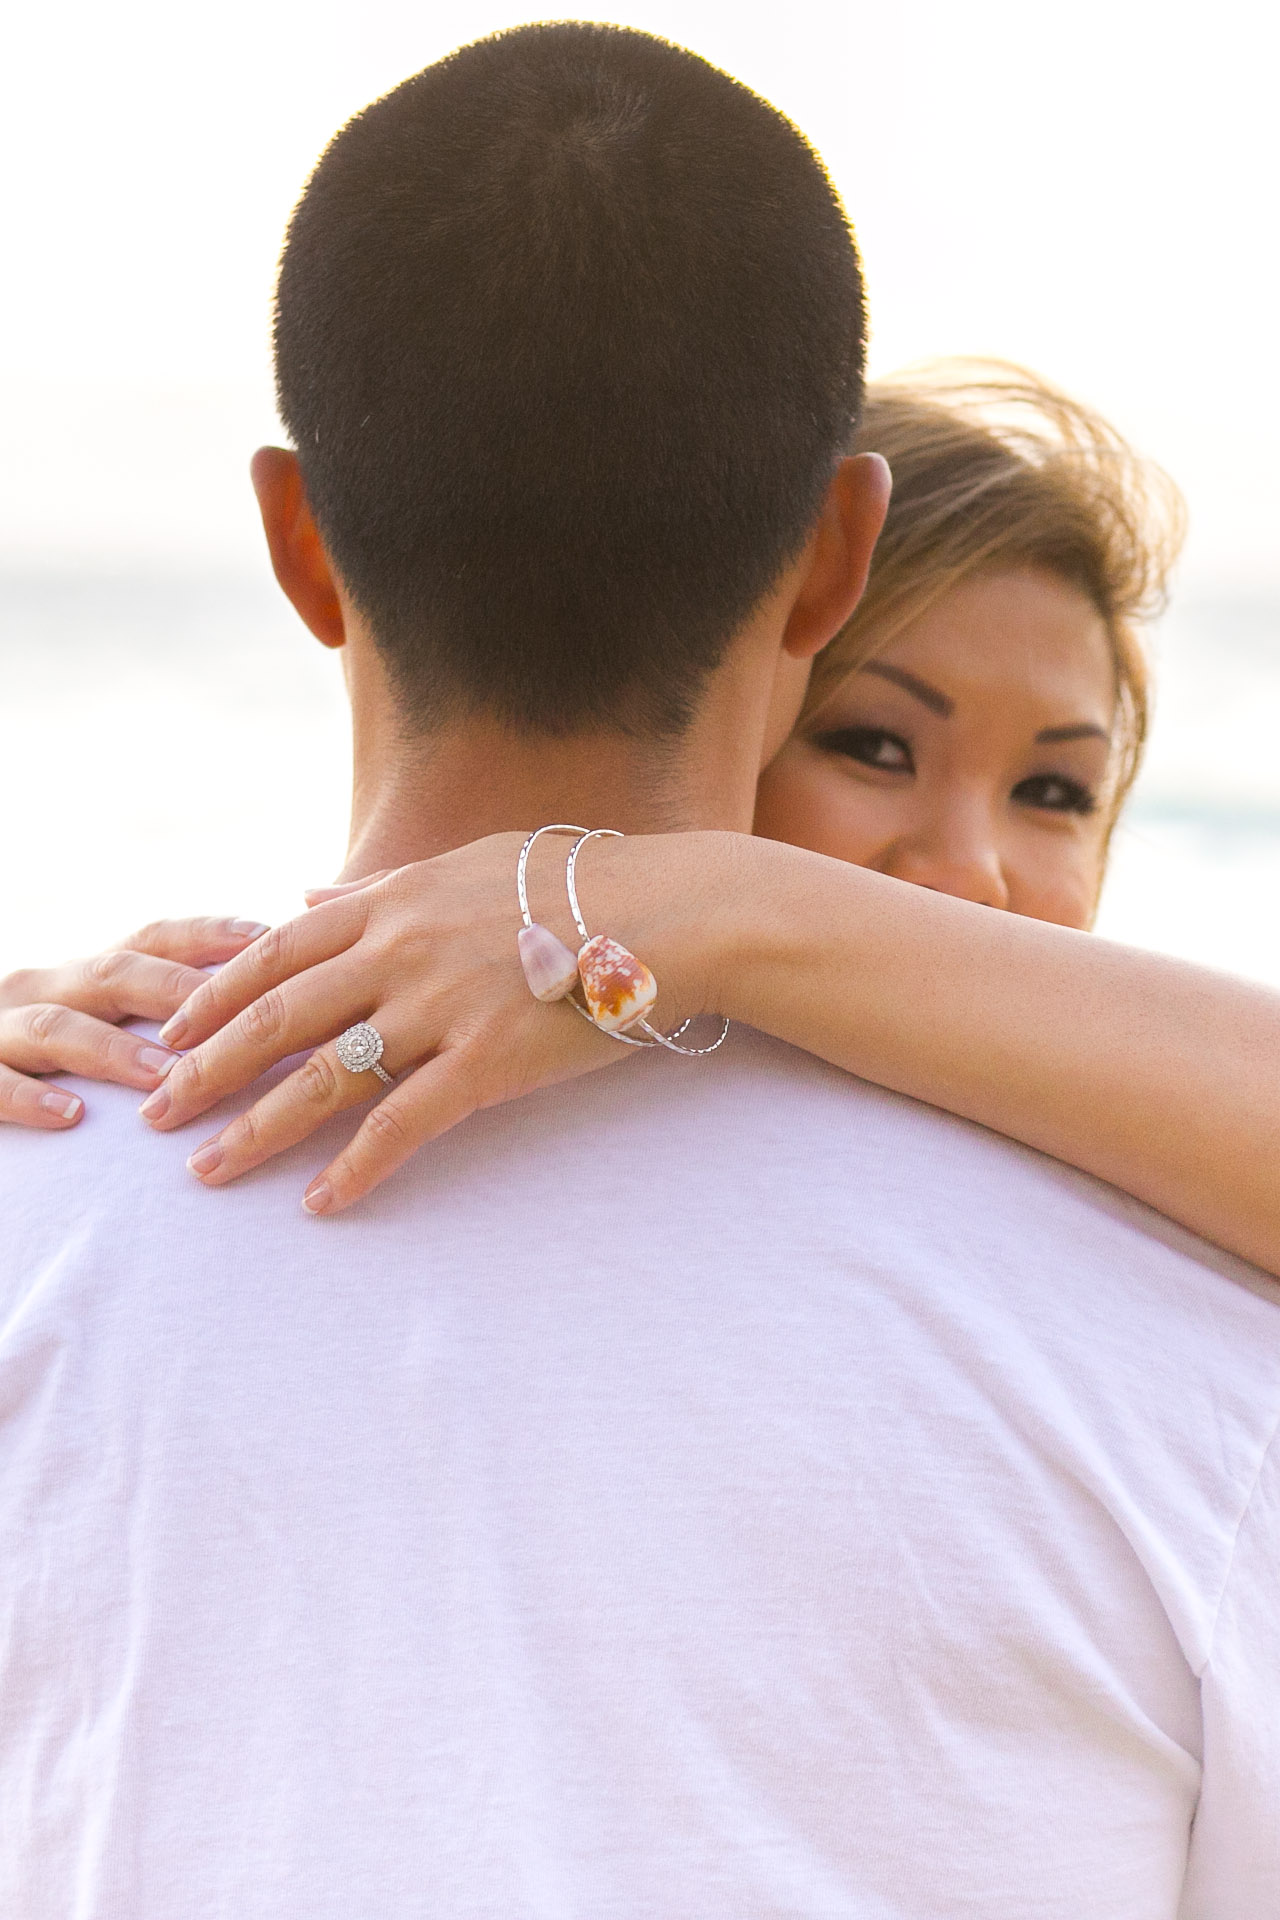 20131020_CHRIS_JEFF_MALIBU_BEACH_ENGAGEMENT_CHRIS_HOLT_PHOTOGRAPHY_011.jpg